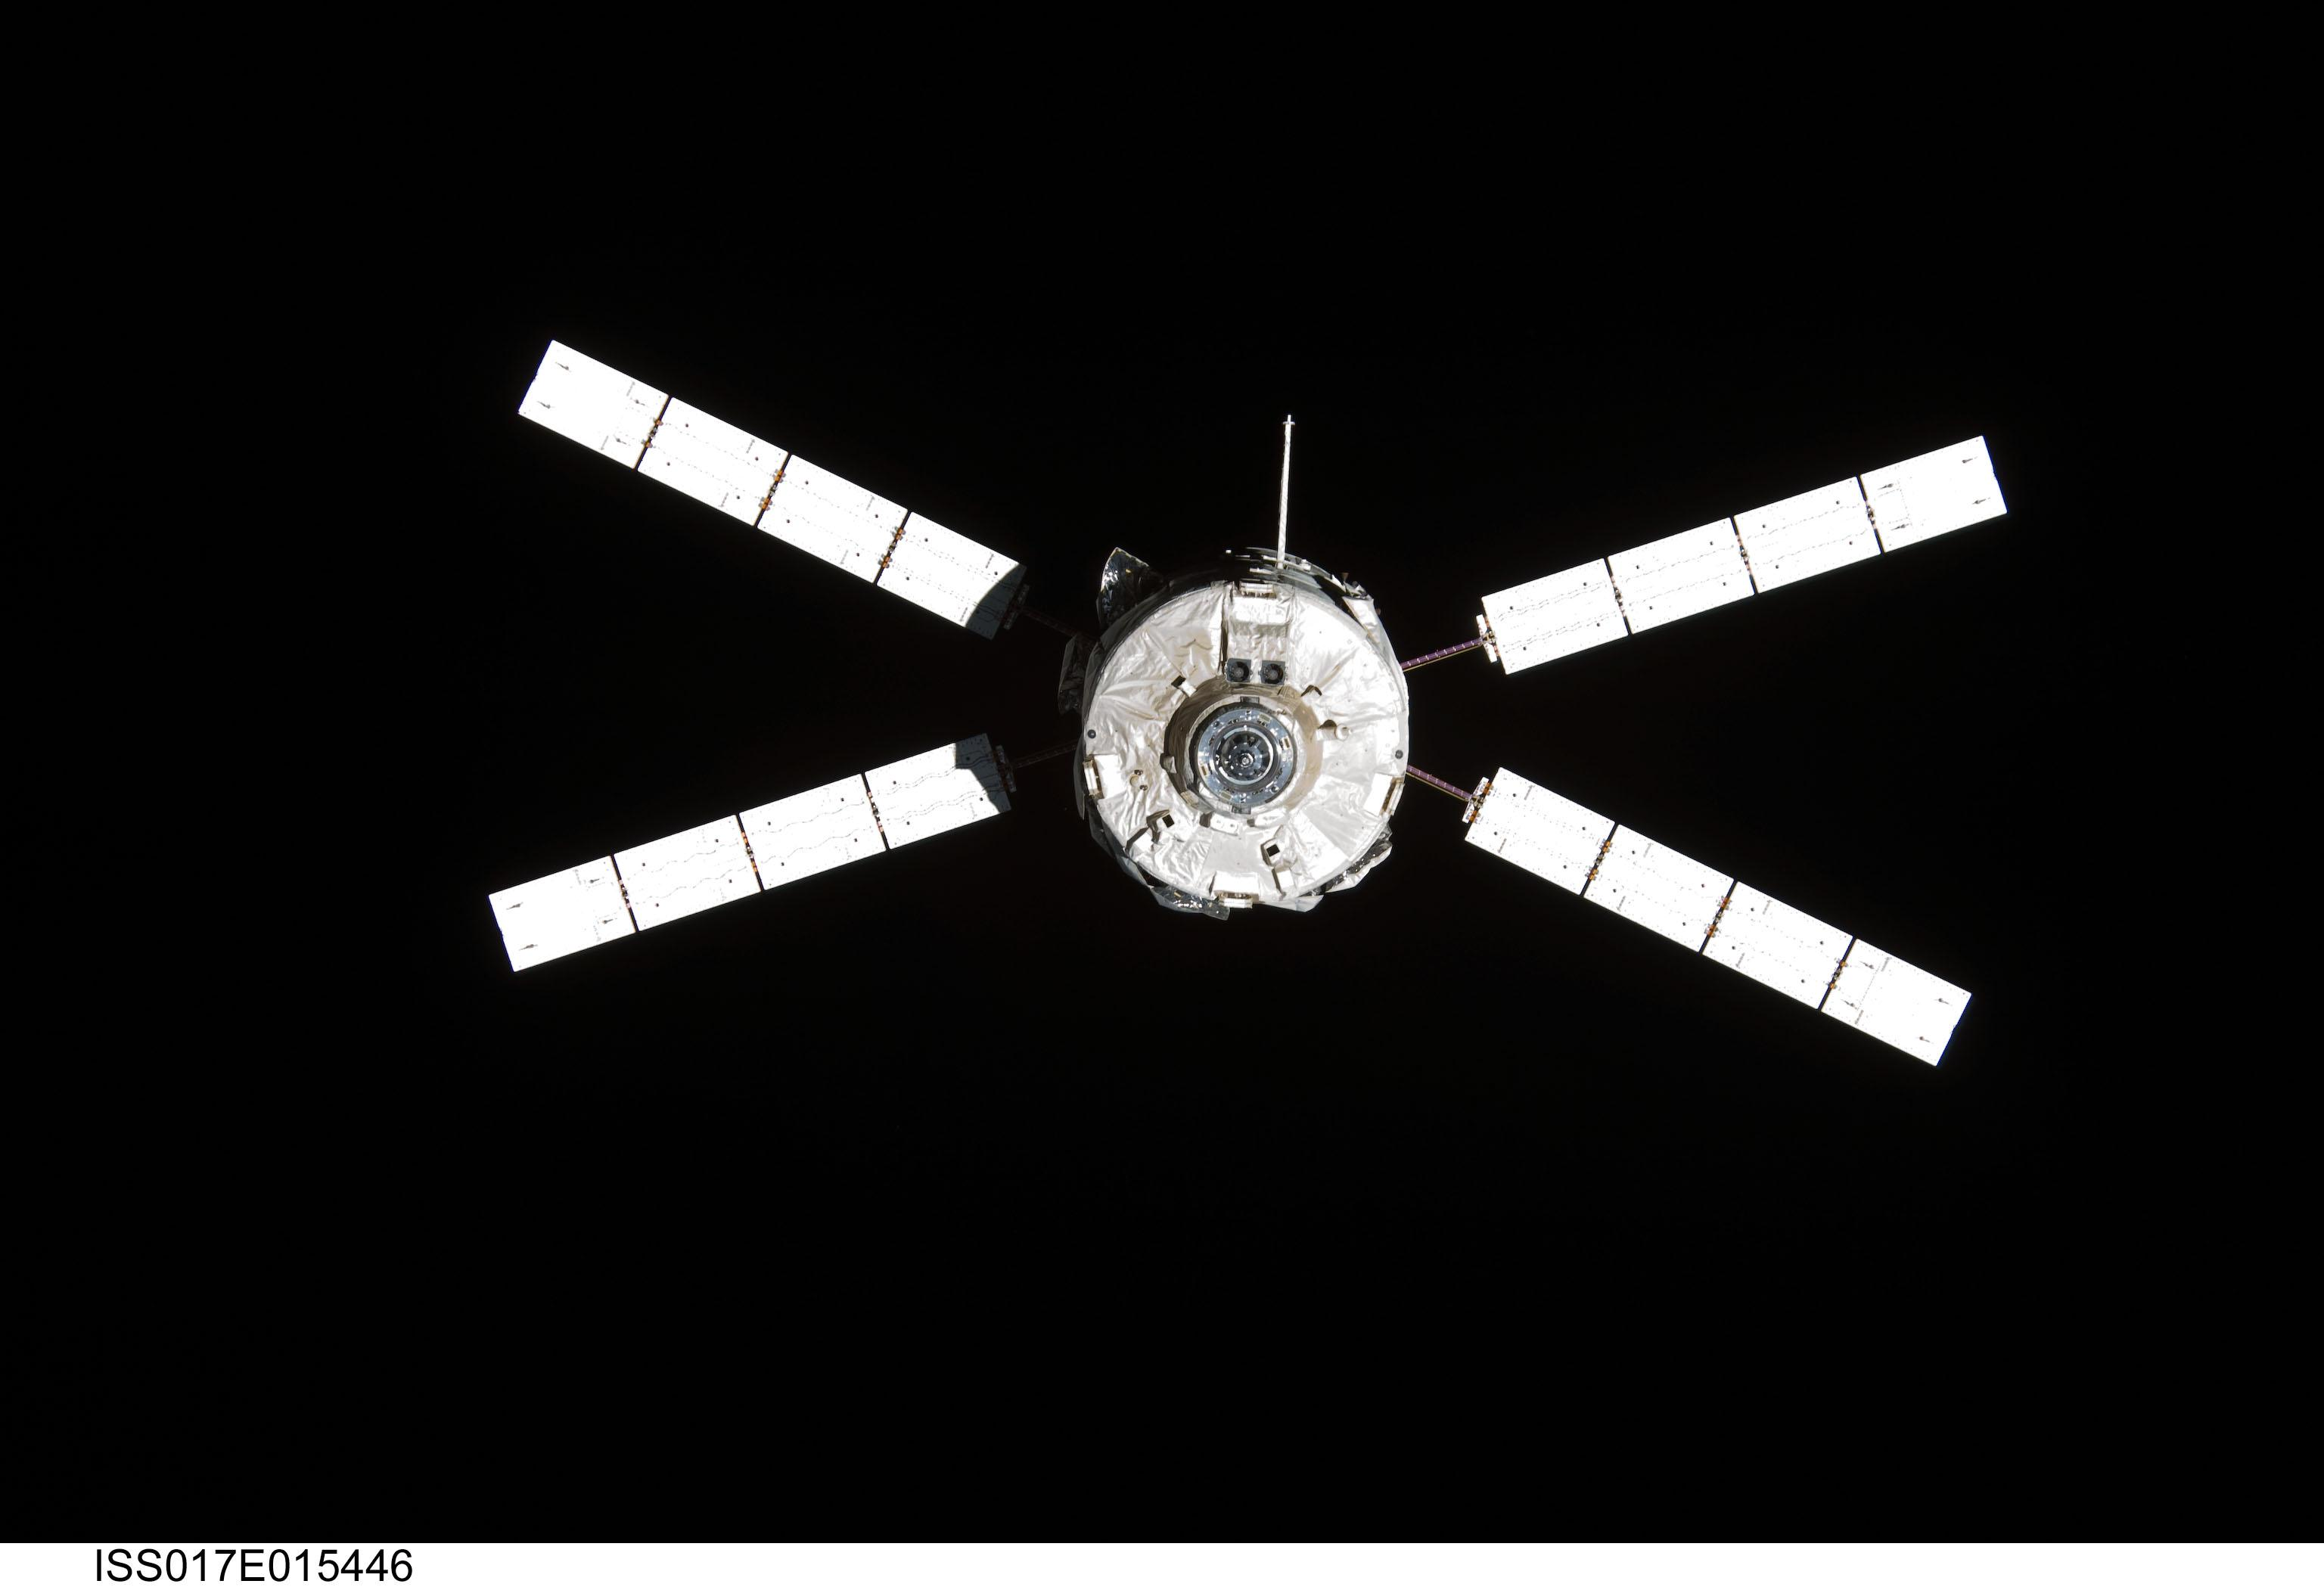 Jules_Verne_ATV_following_undocking_from_the_International_Space_Station.jpg